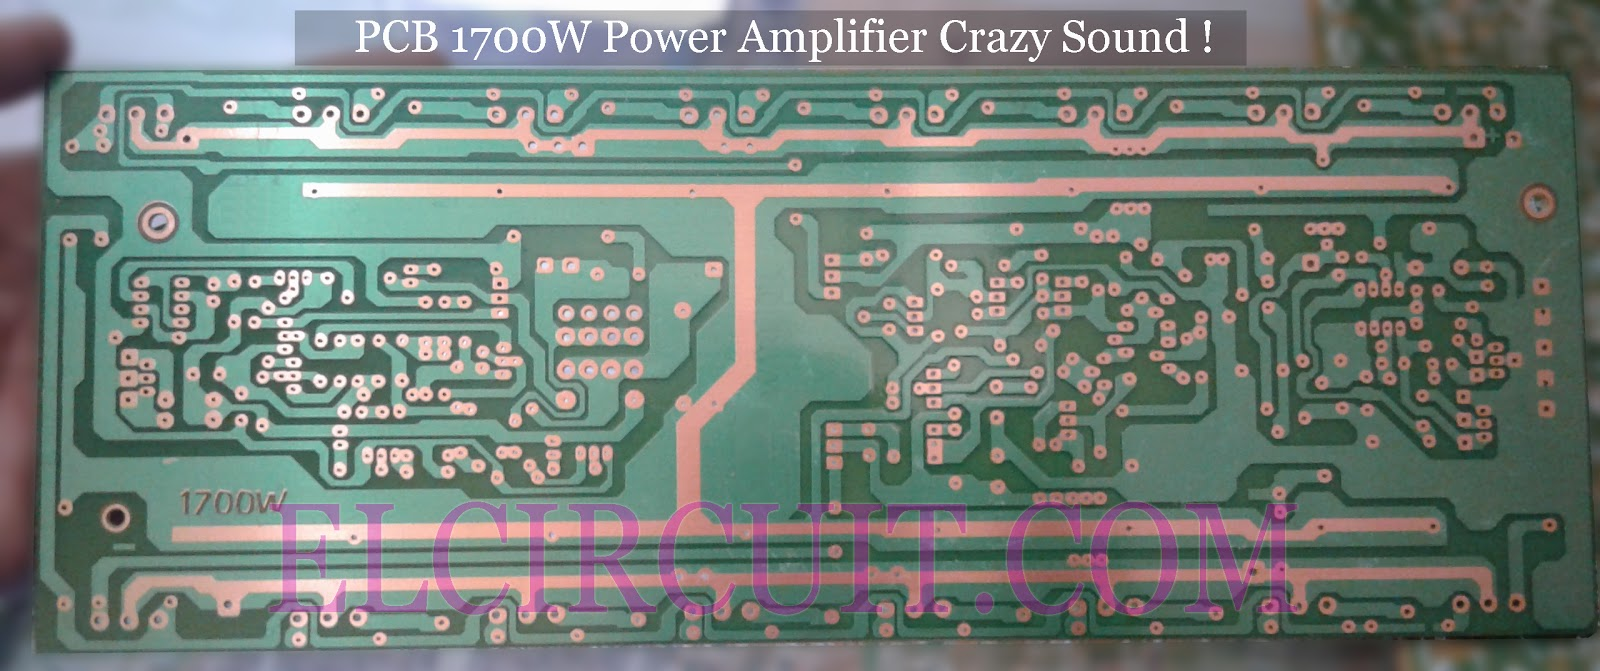 300watt Subwoofer Power Amplifier Wiring Diagram Electronic Schematic